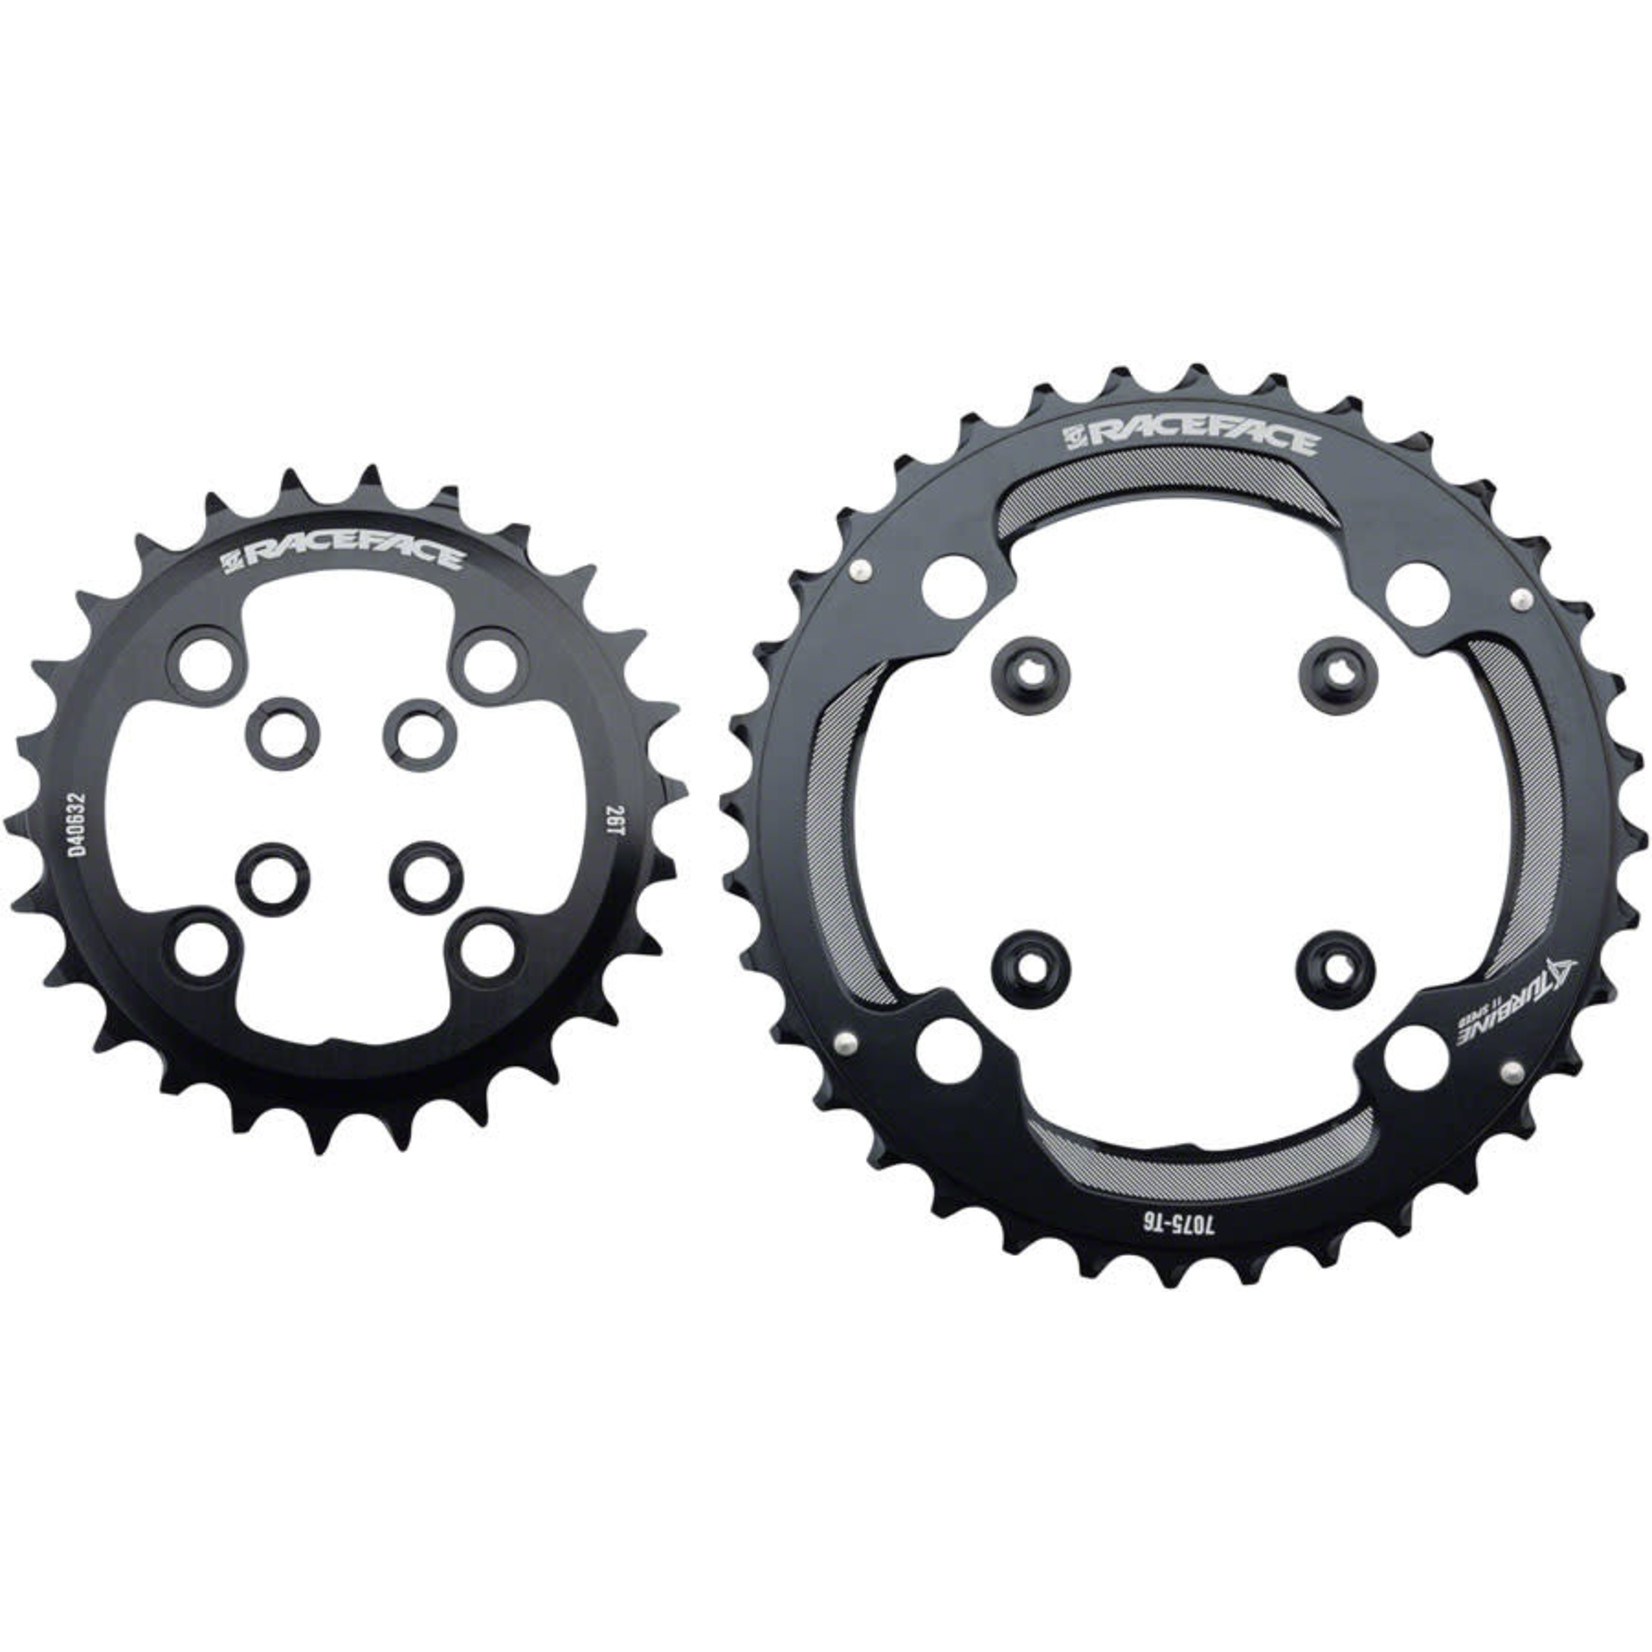 Race Face Race Face Turbine 11-Speed Chainring Set - 64/104mm BCD - 26/36t